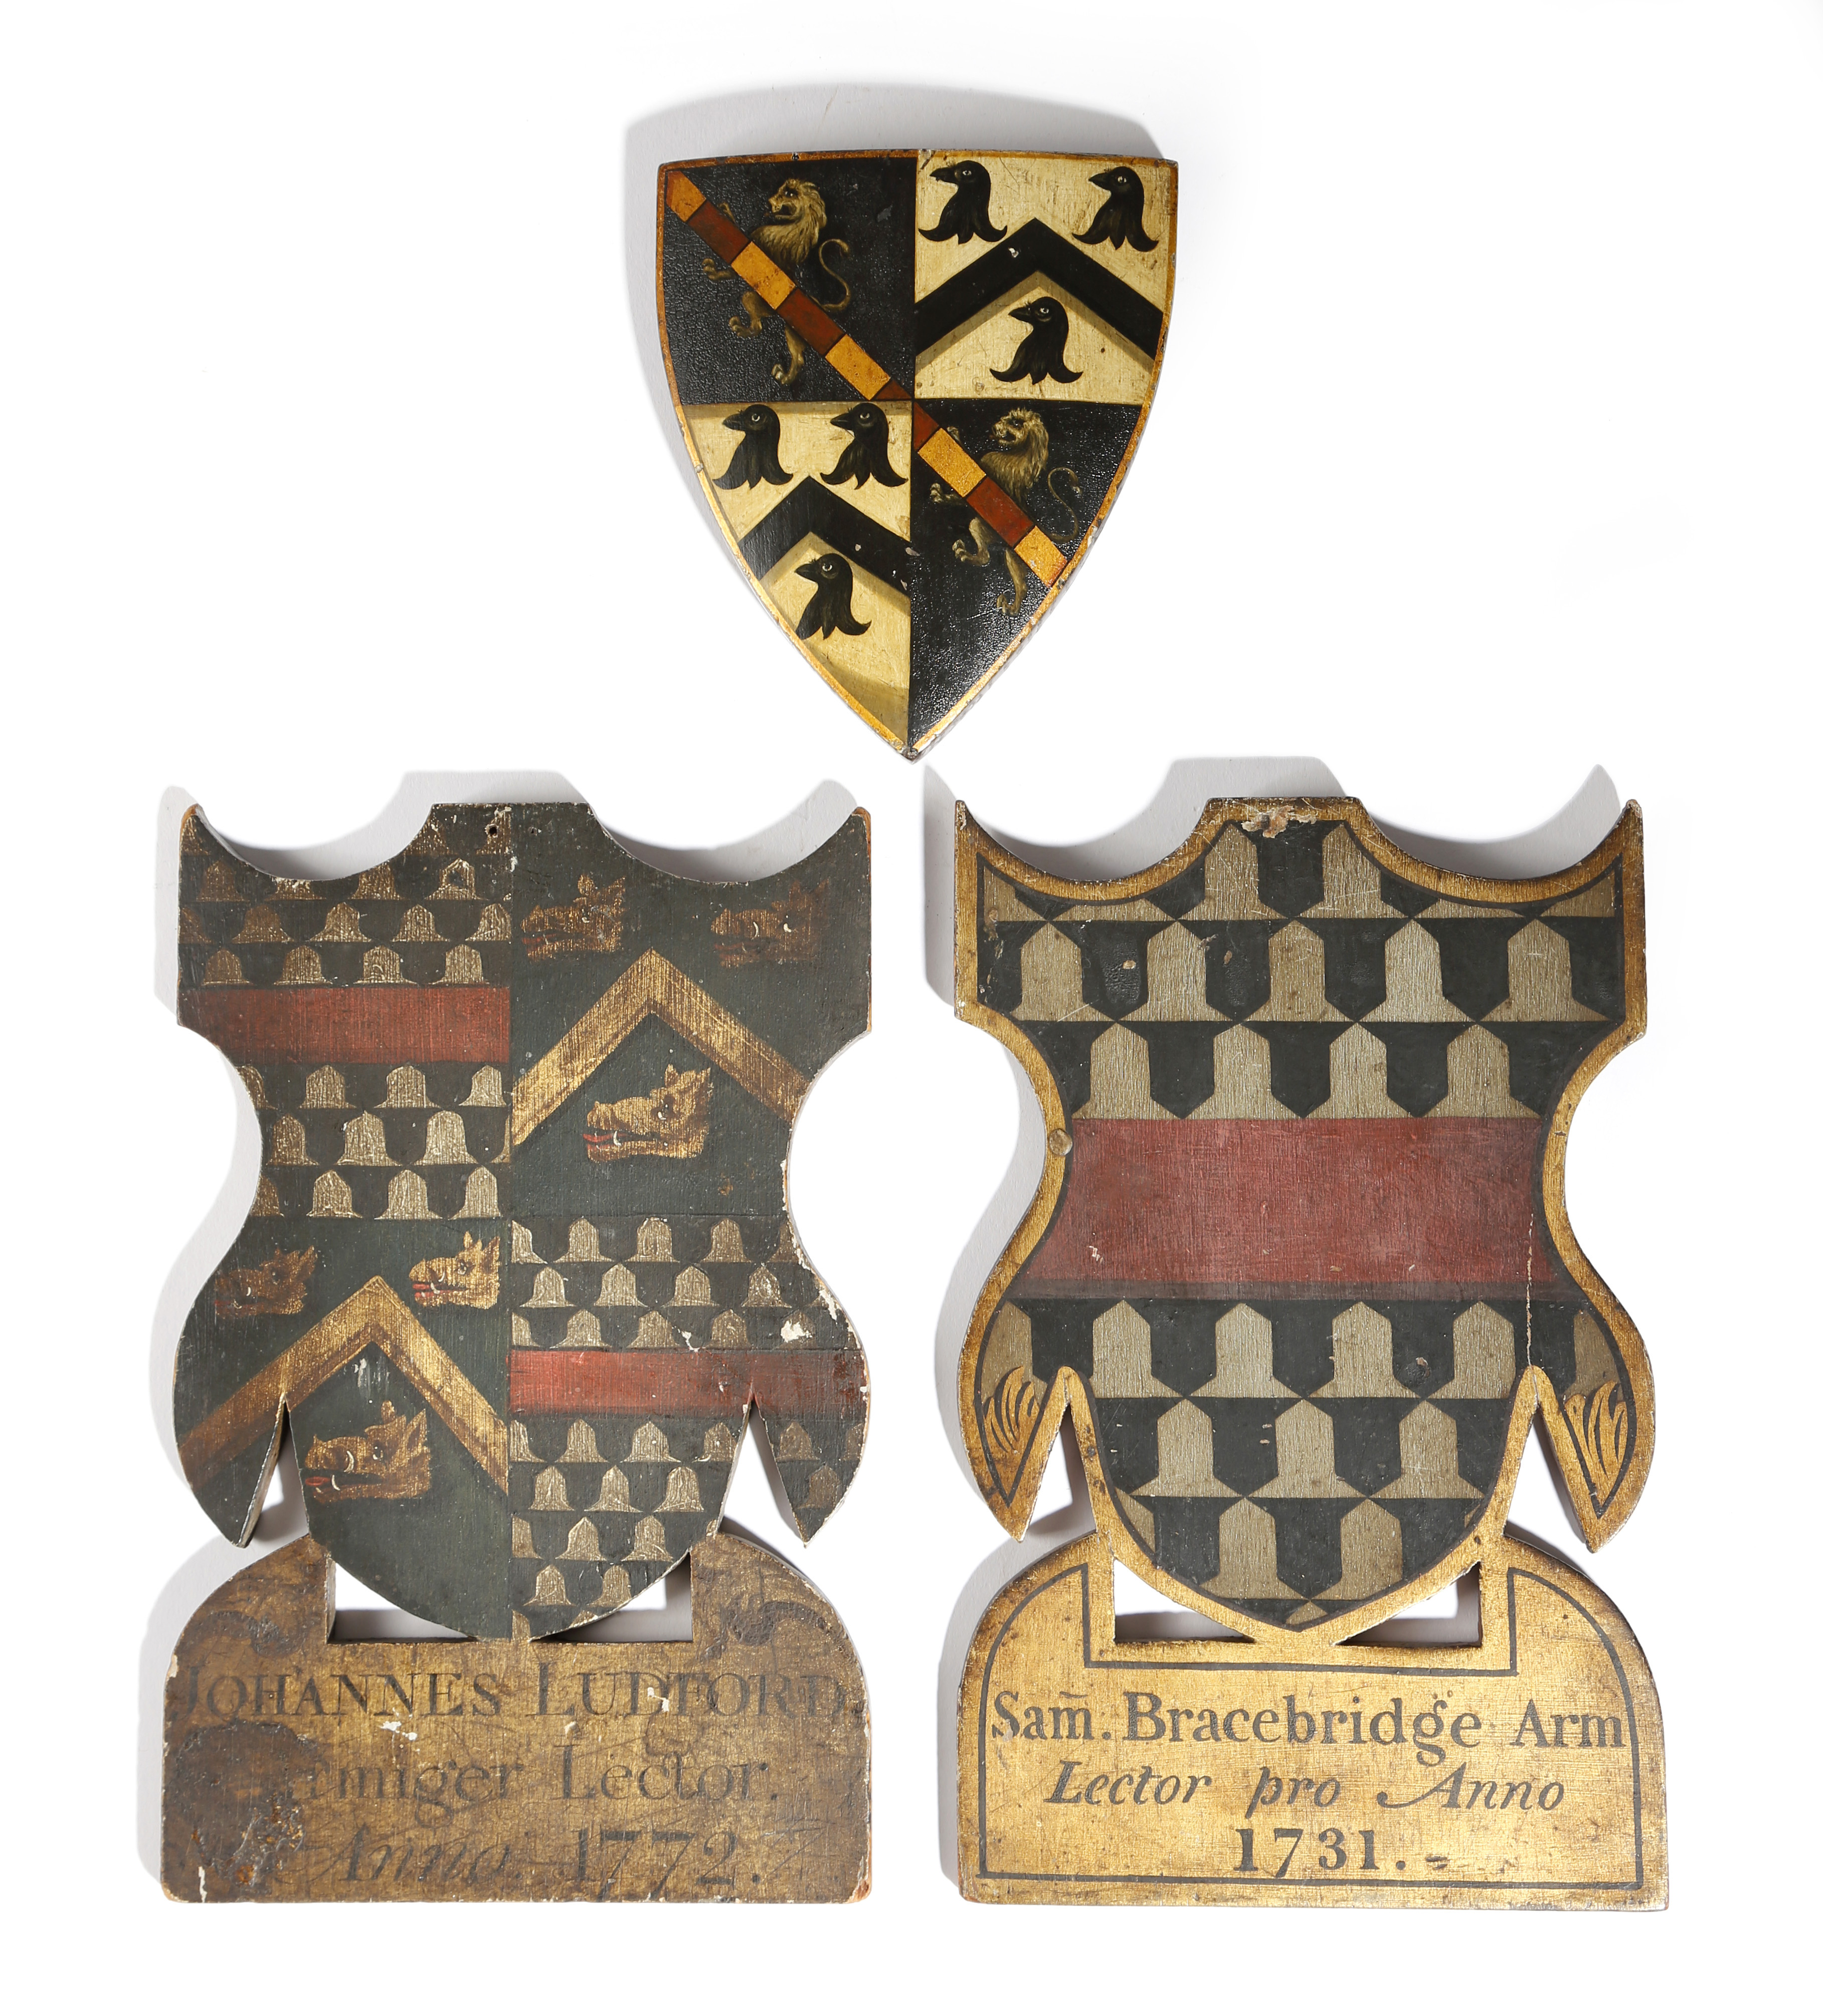 Lot 568 - Heraldry interest. Three carved and painted wood coats of arms, parcel gilt, two with